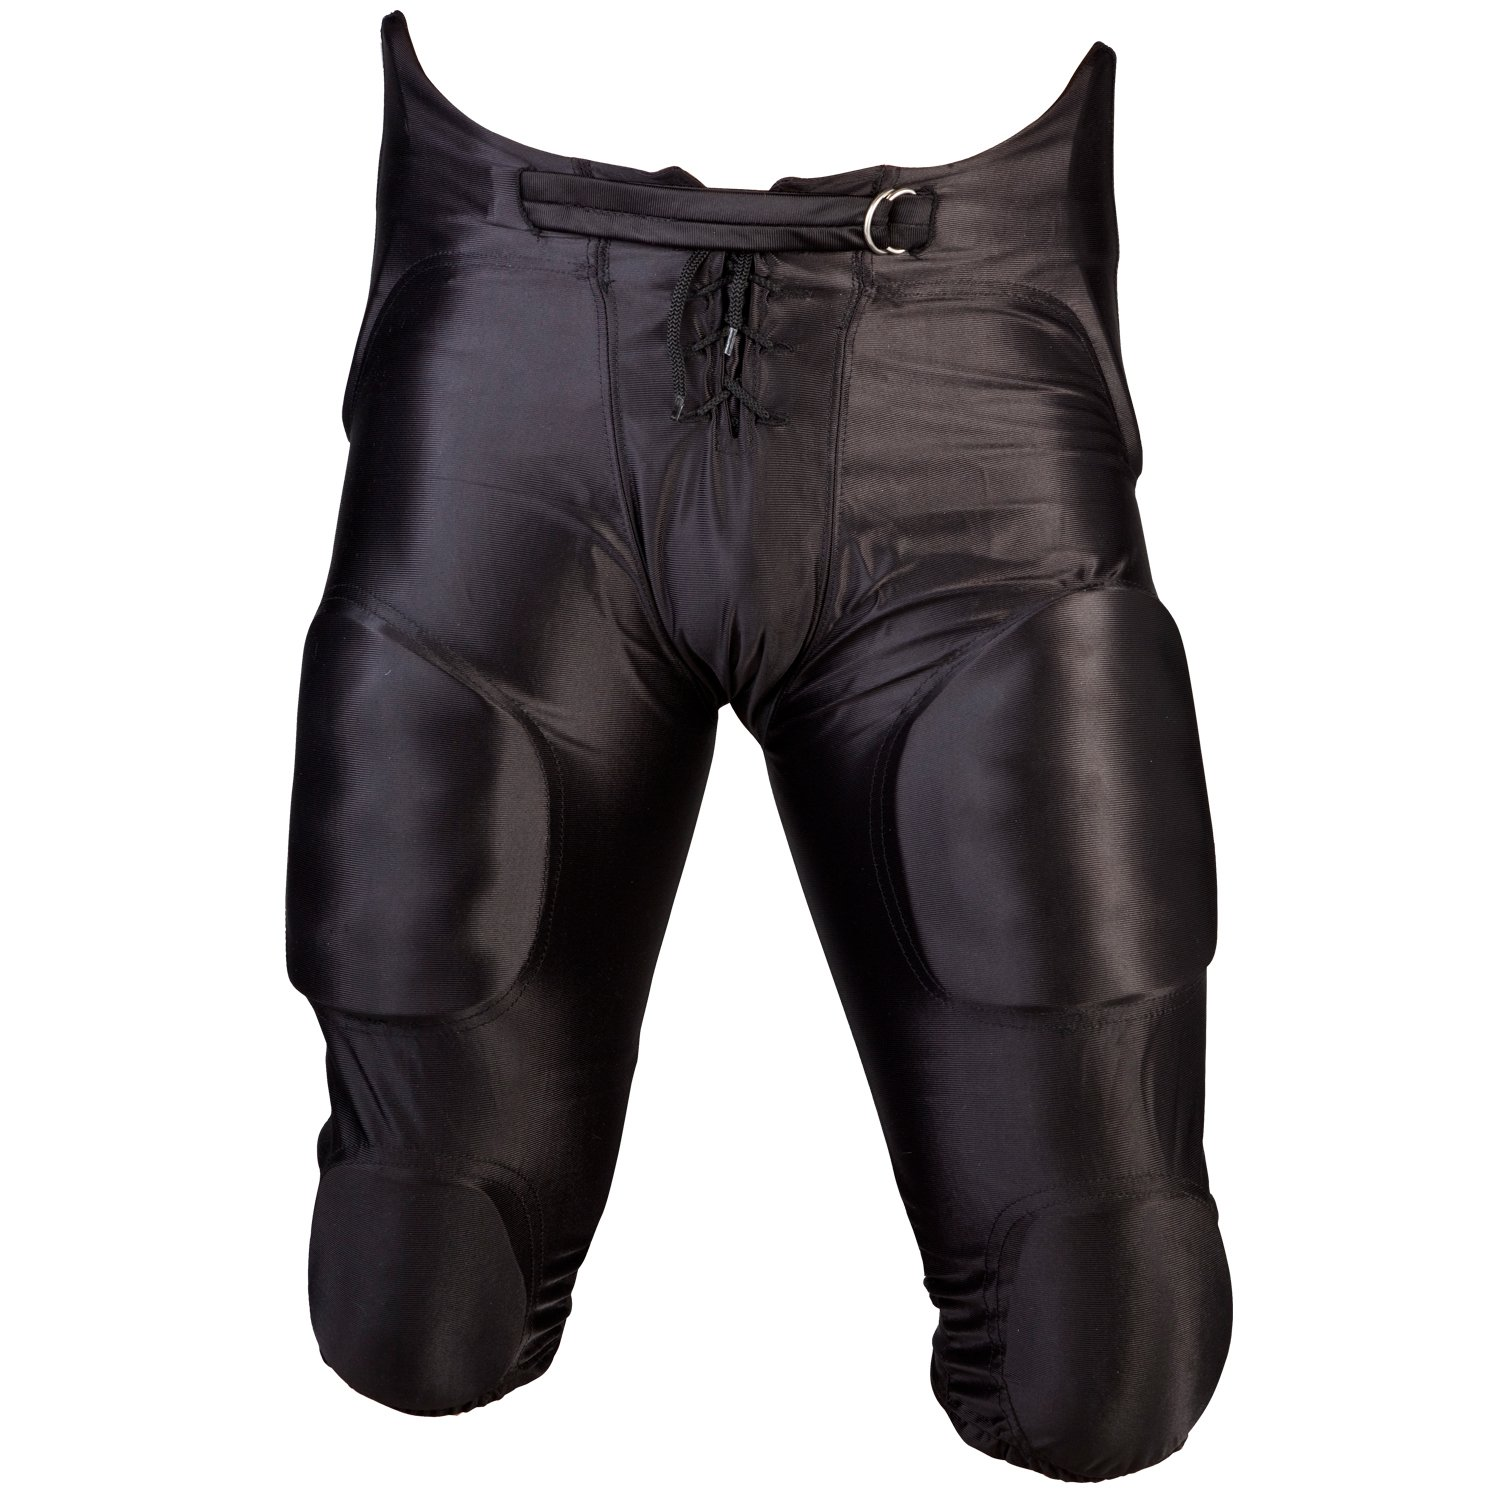 Game pants in football